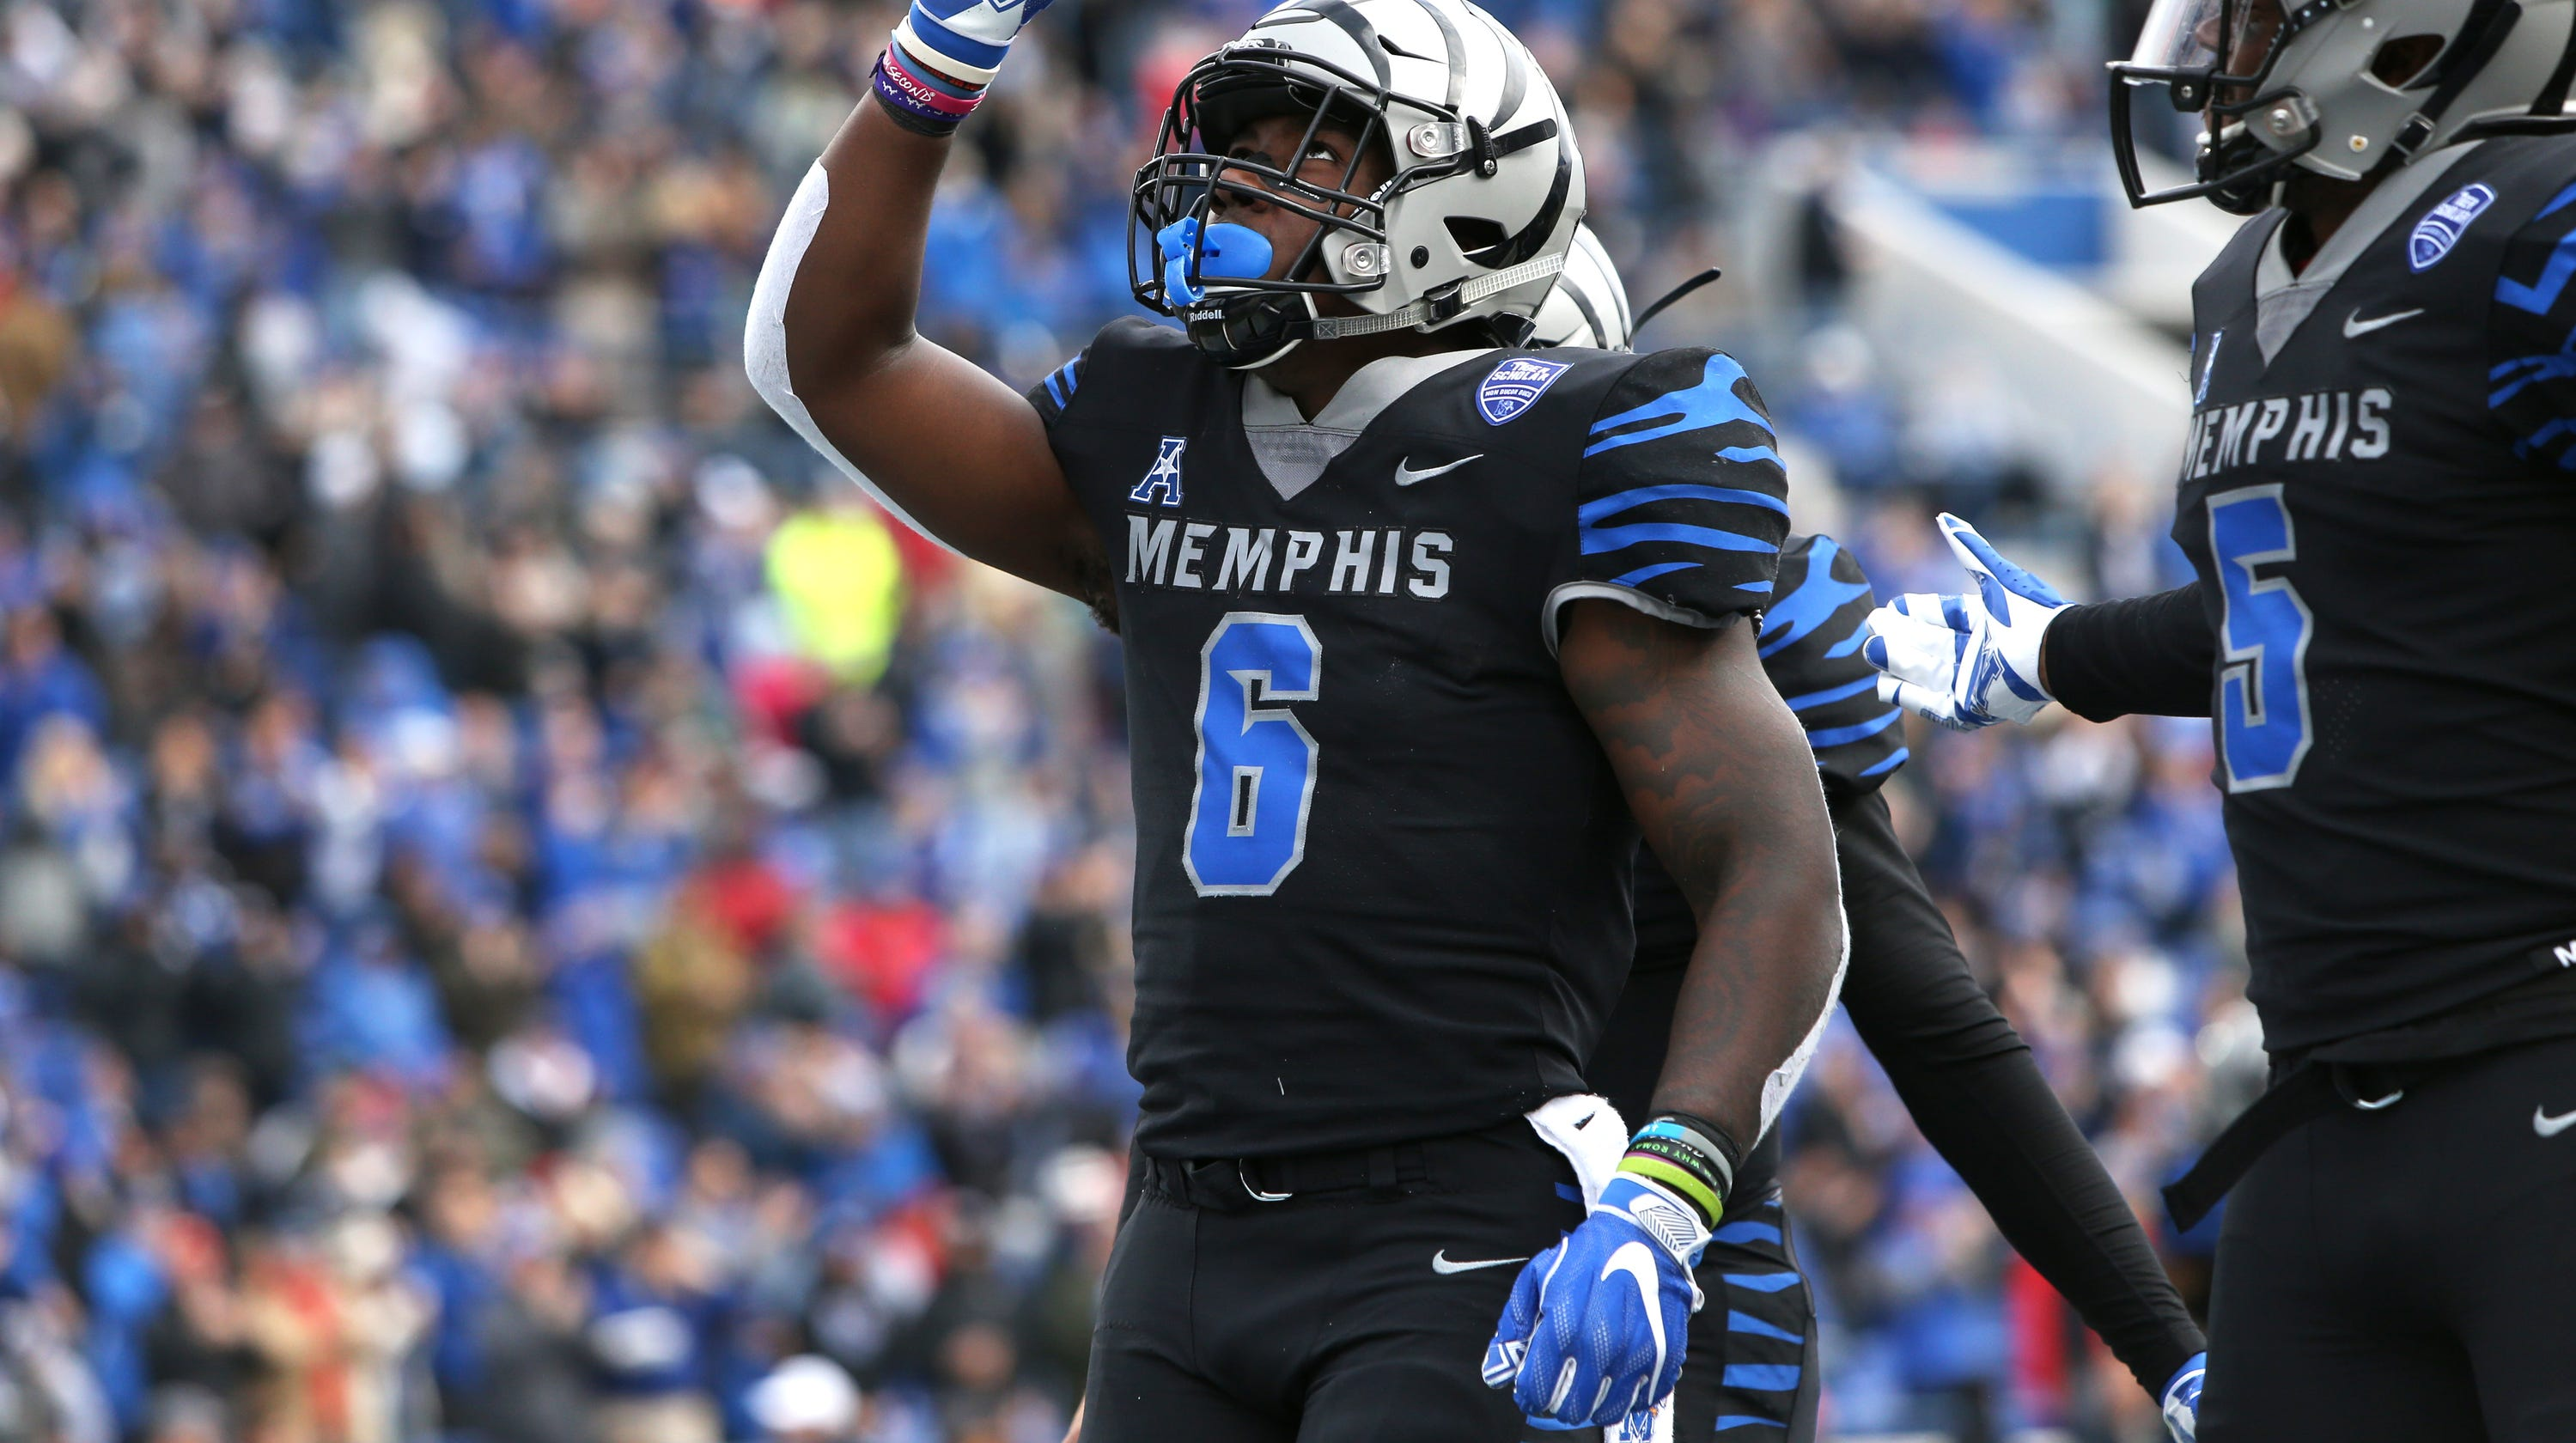 Ole Miss football: Here's why Rebels are underdogs vs Memphis